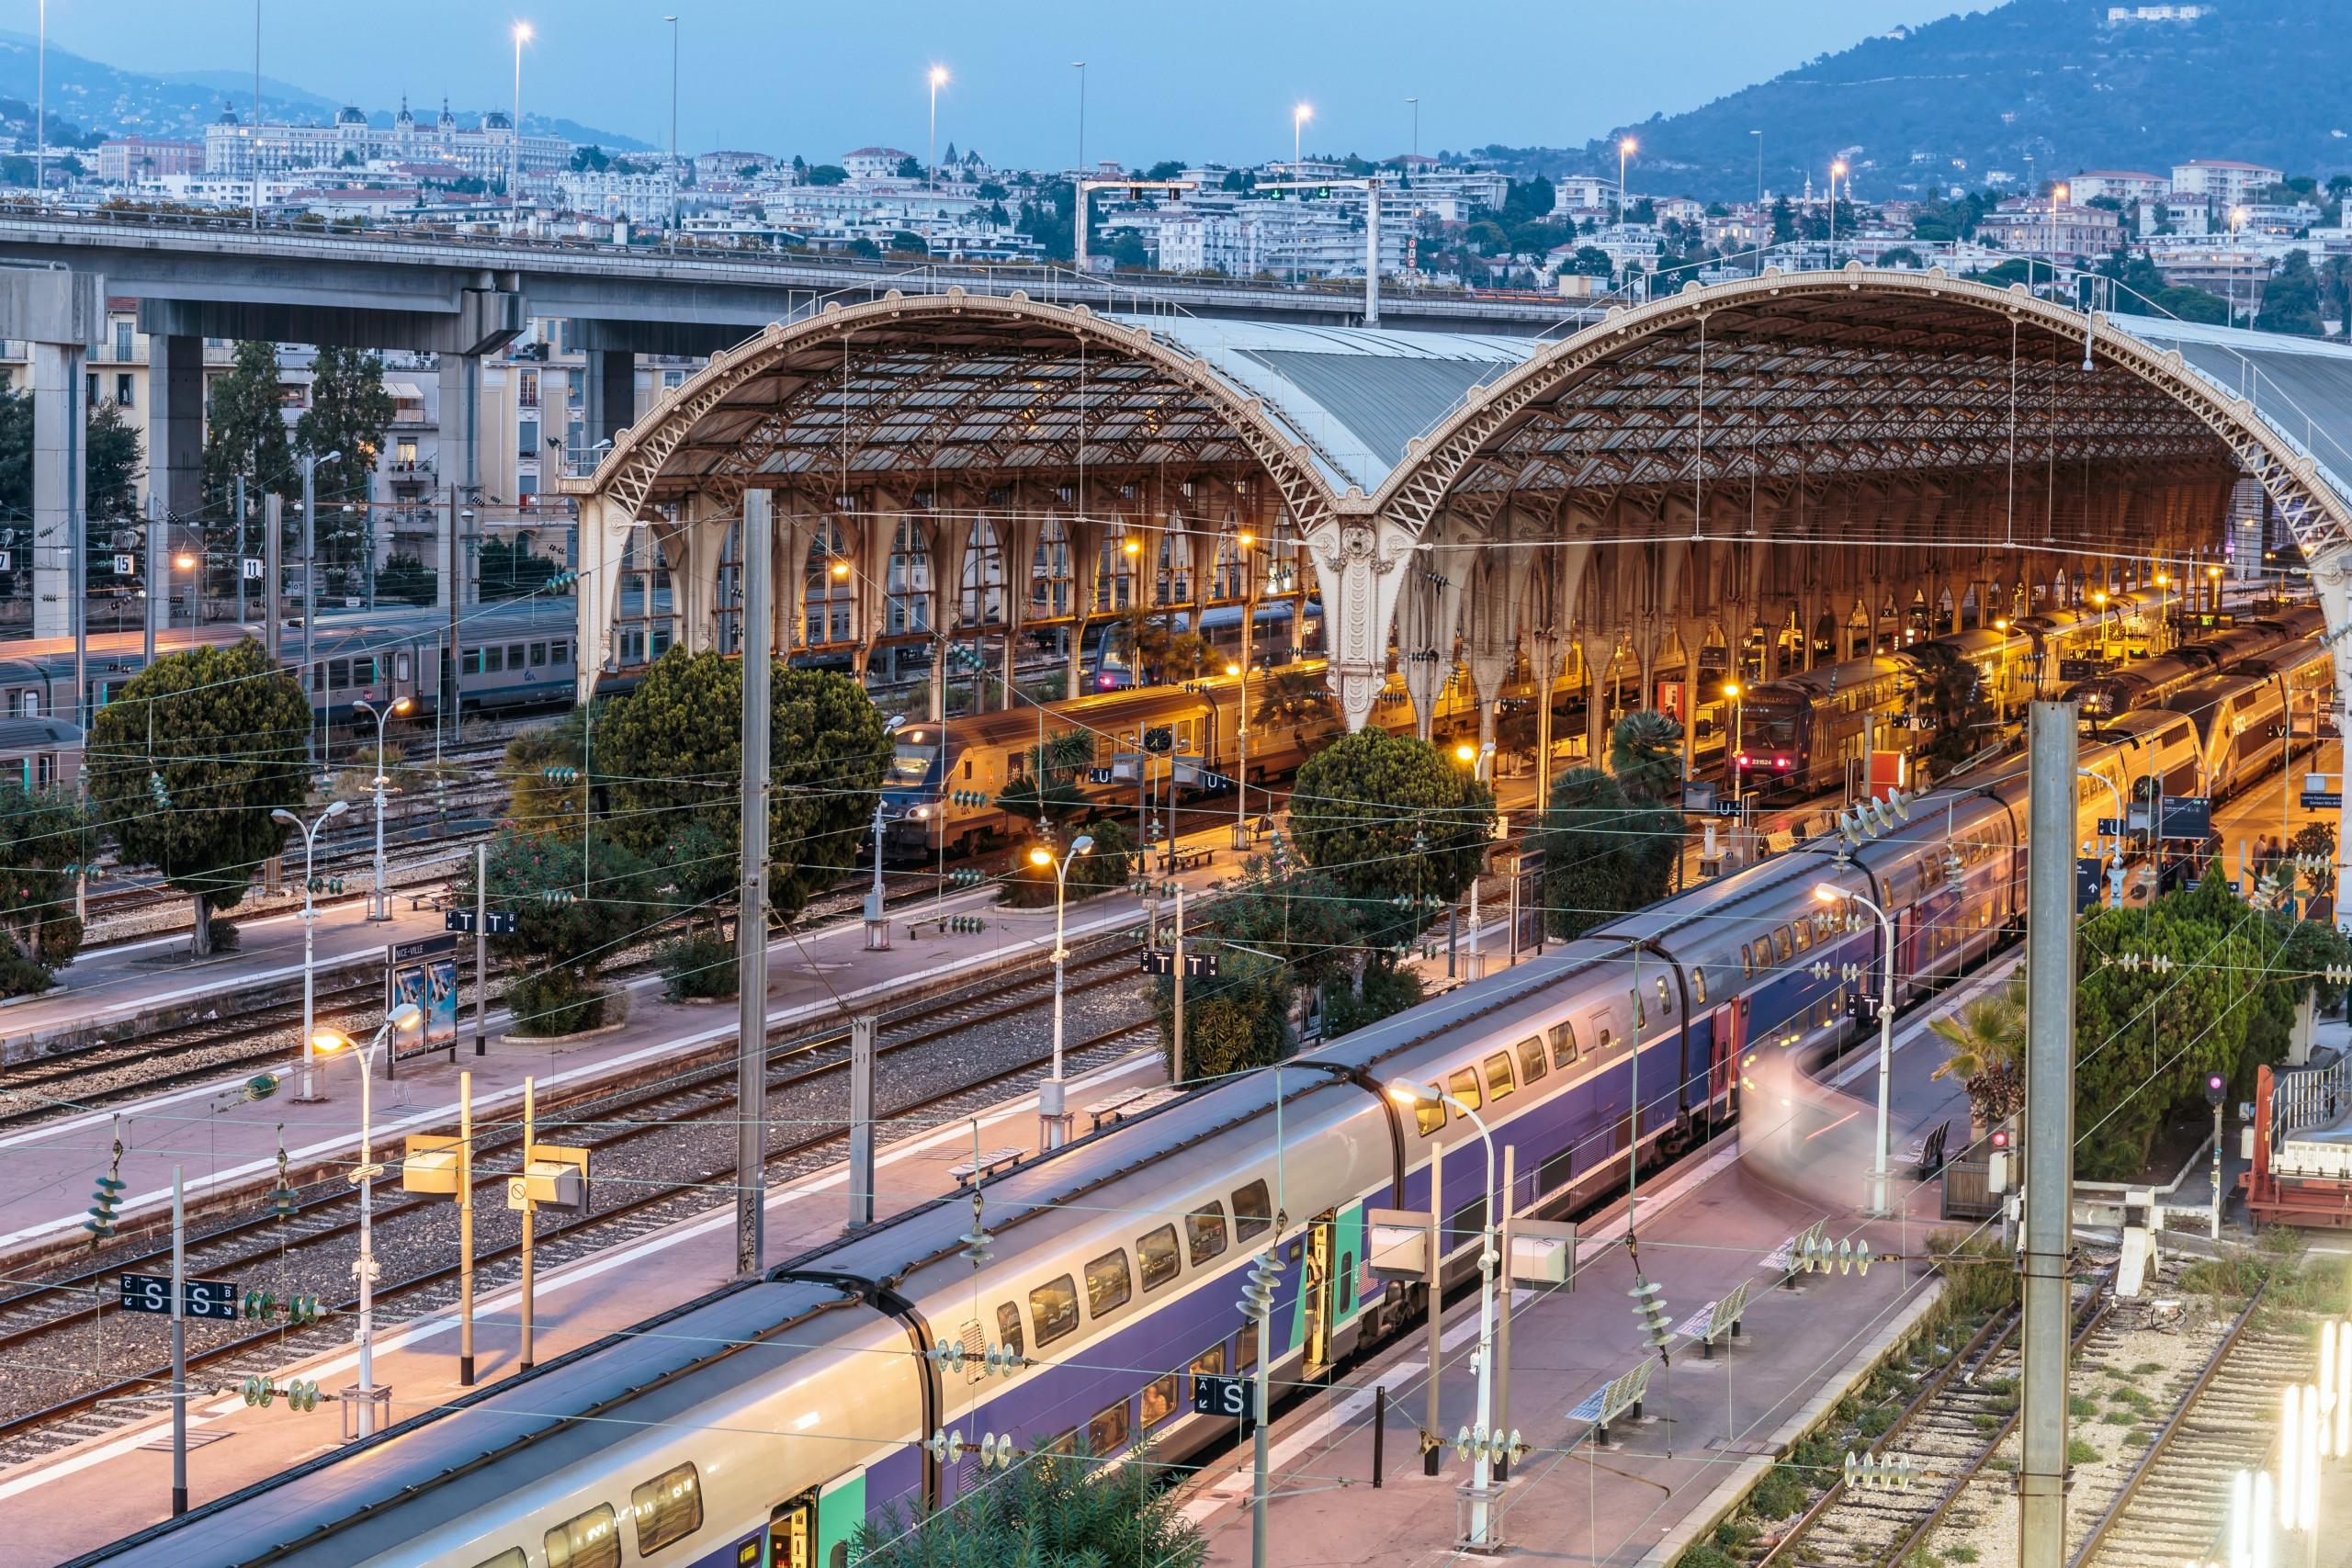 An aerial shot of a large station with two glass-and-steel arches forming the roof. Four trains wait at the platforms